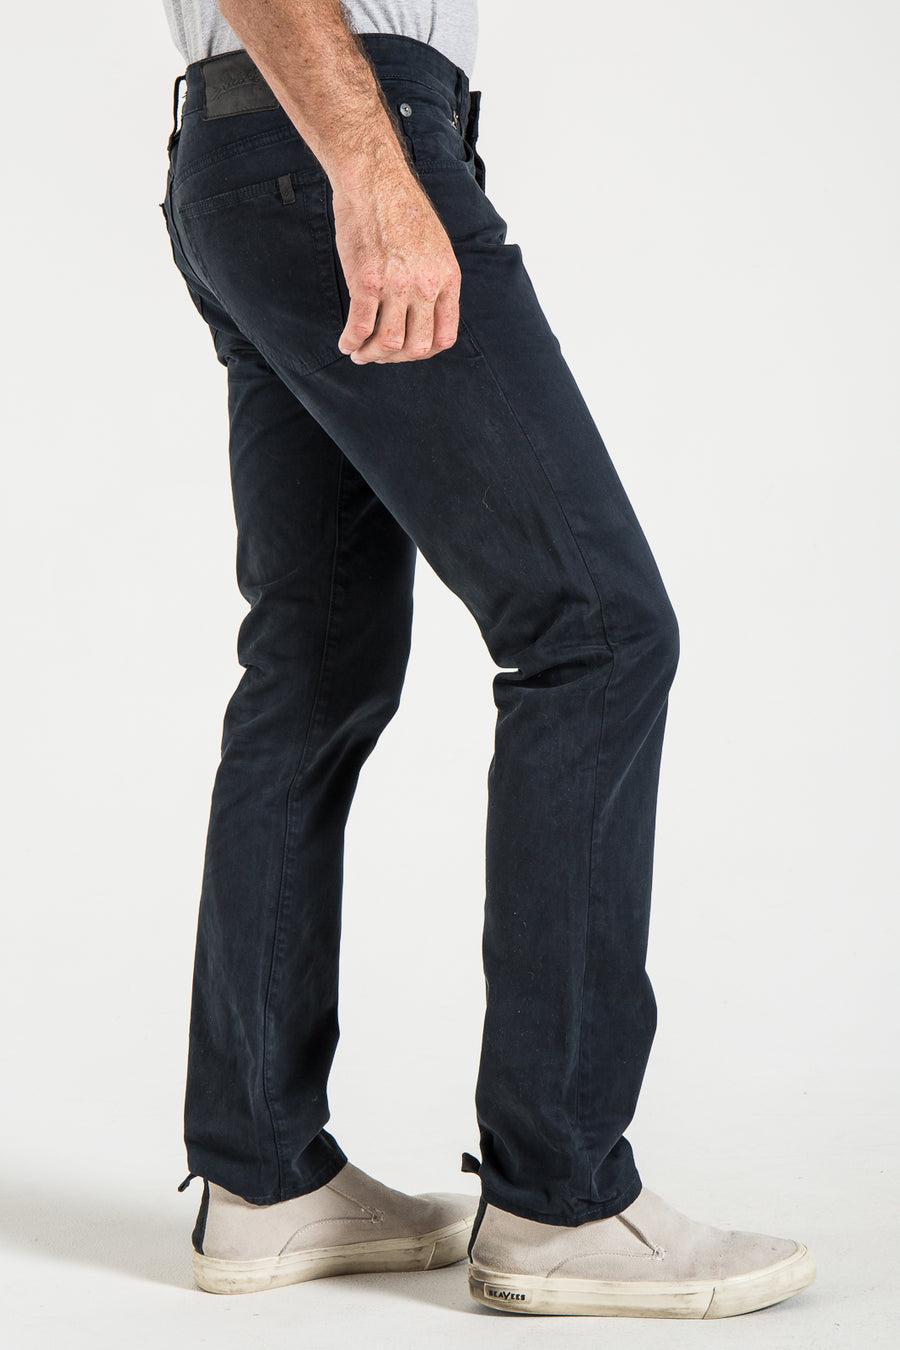 BARFLY SLIM IN COLONIAL SATEEN TWILL